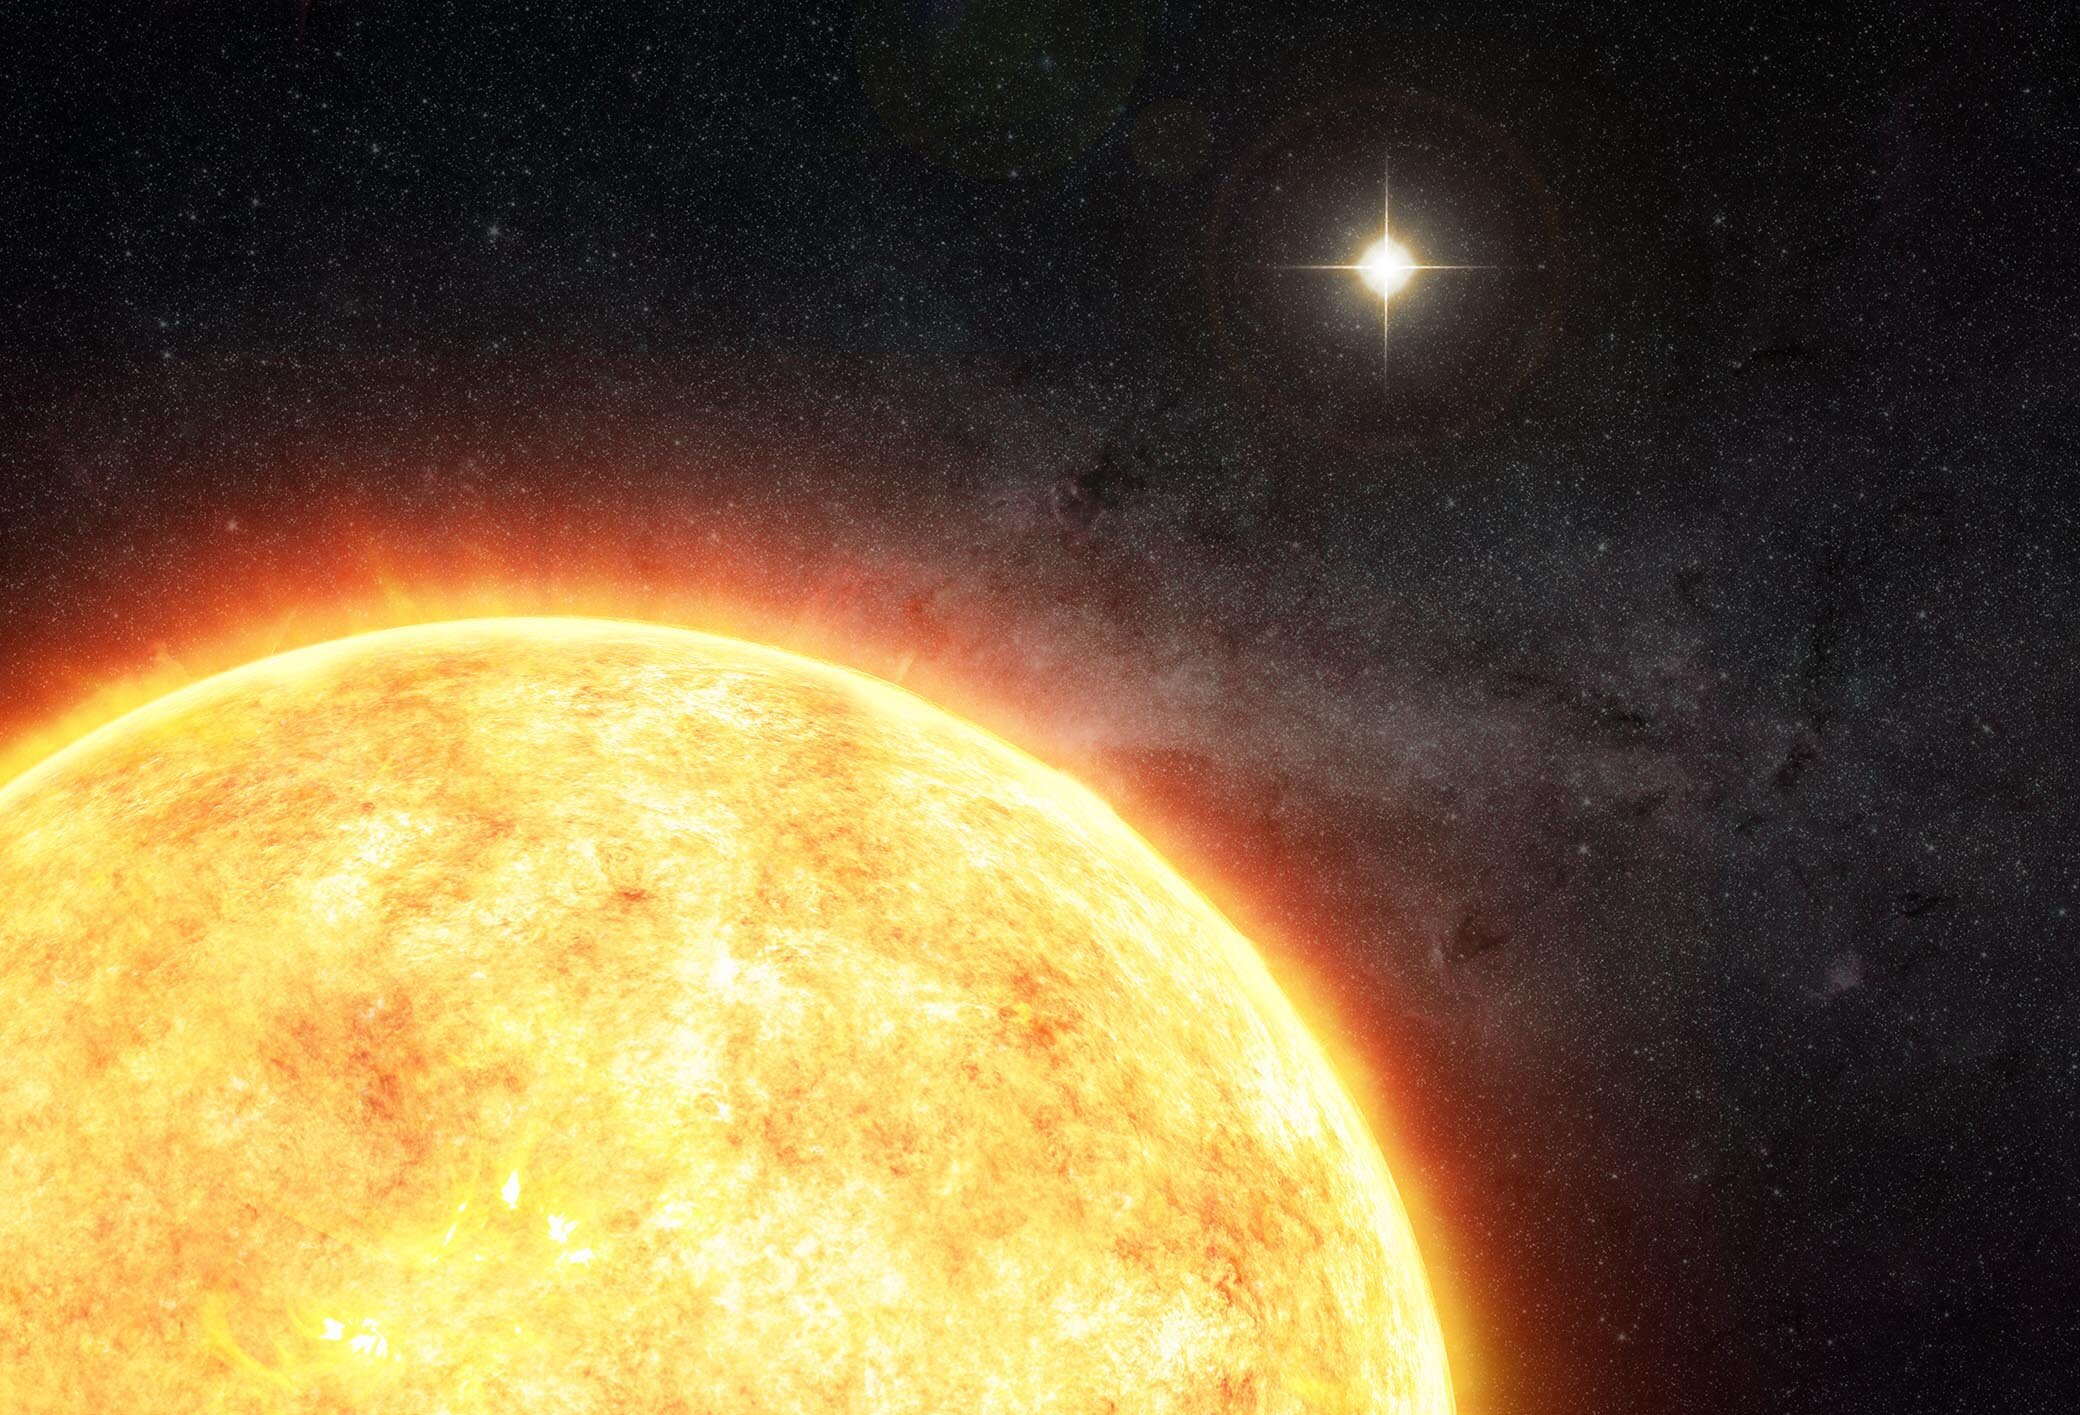 The sun may have started its life with a binary companion